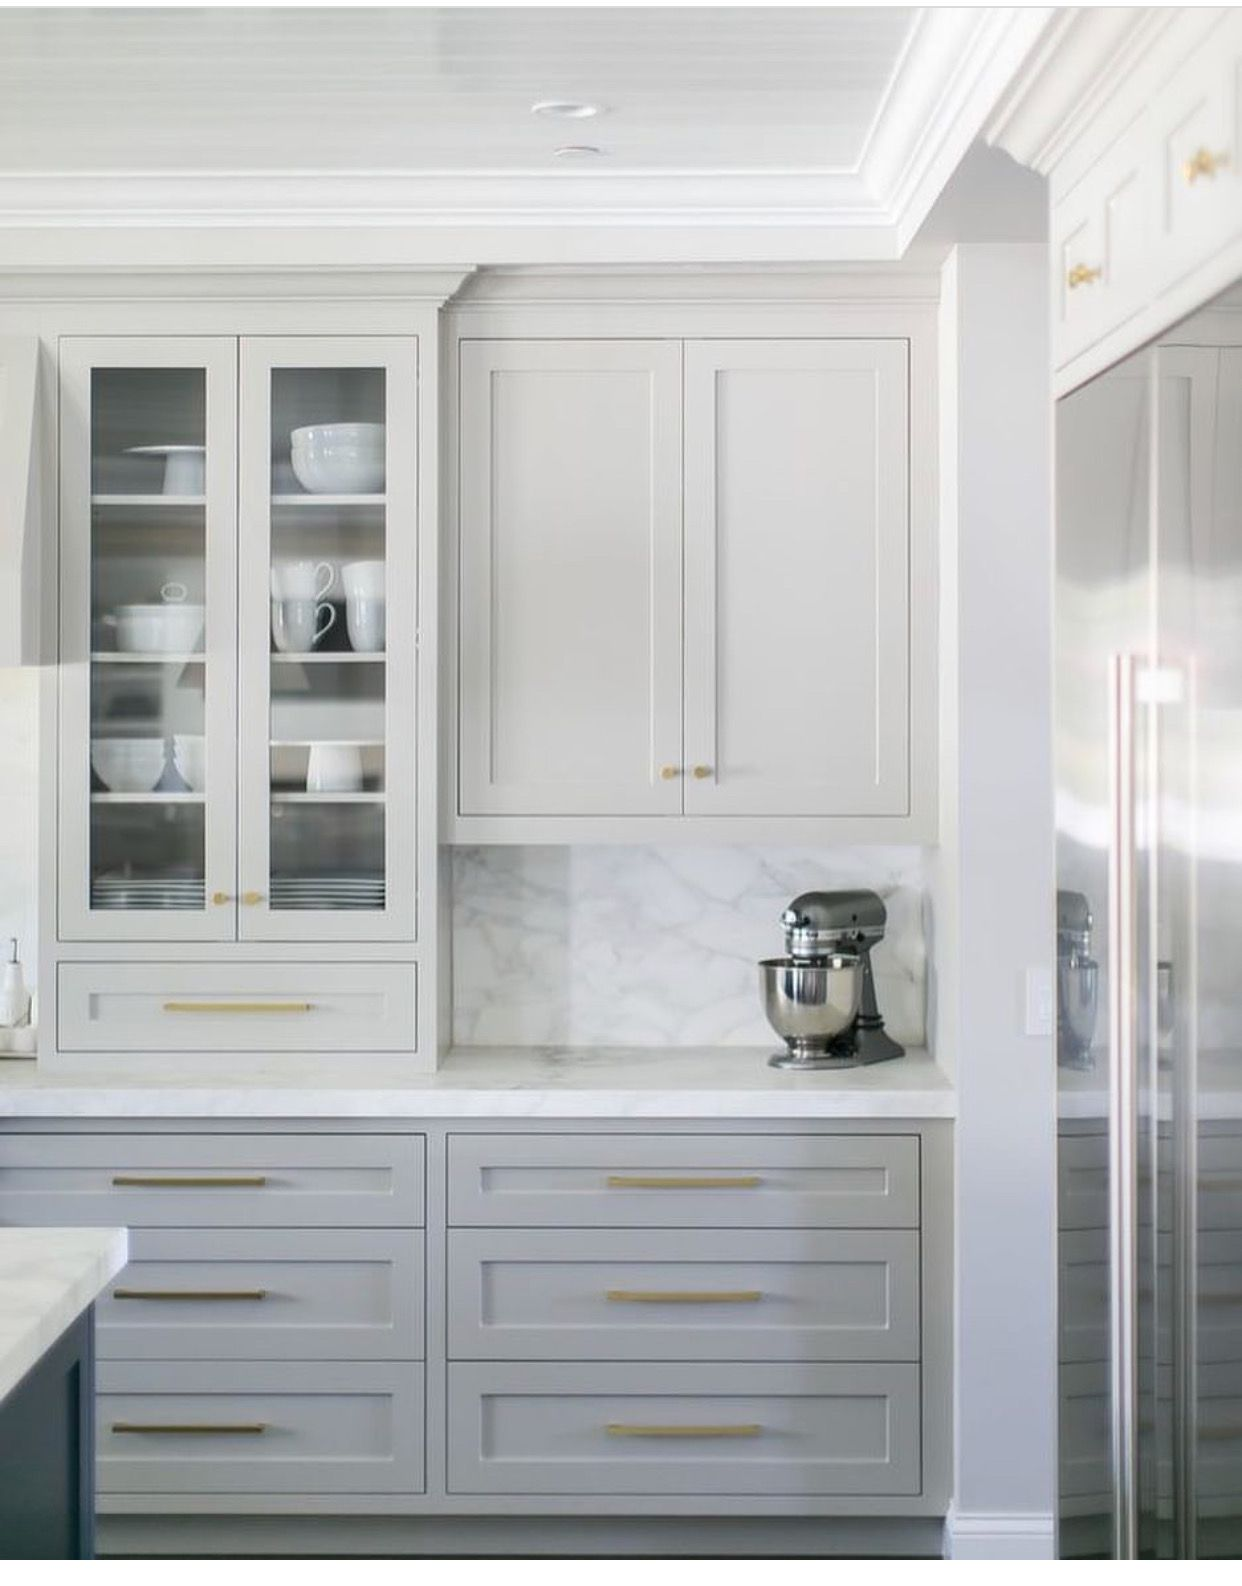 Ge Artistry Kitchen Microwave Cabinet Like The Layout Of A Full To Counter Next Half Which Creates Space For Applicances Toaster Oven Style And Placement